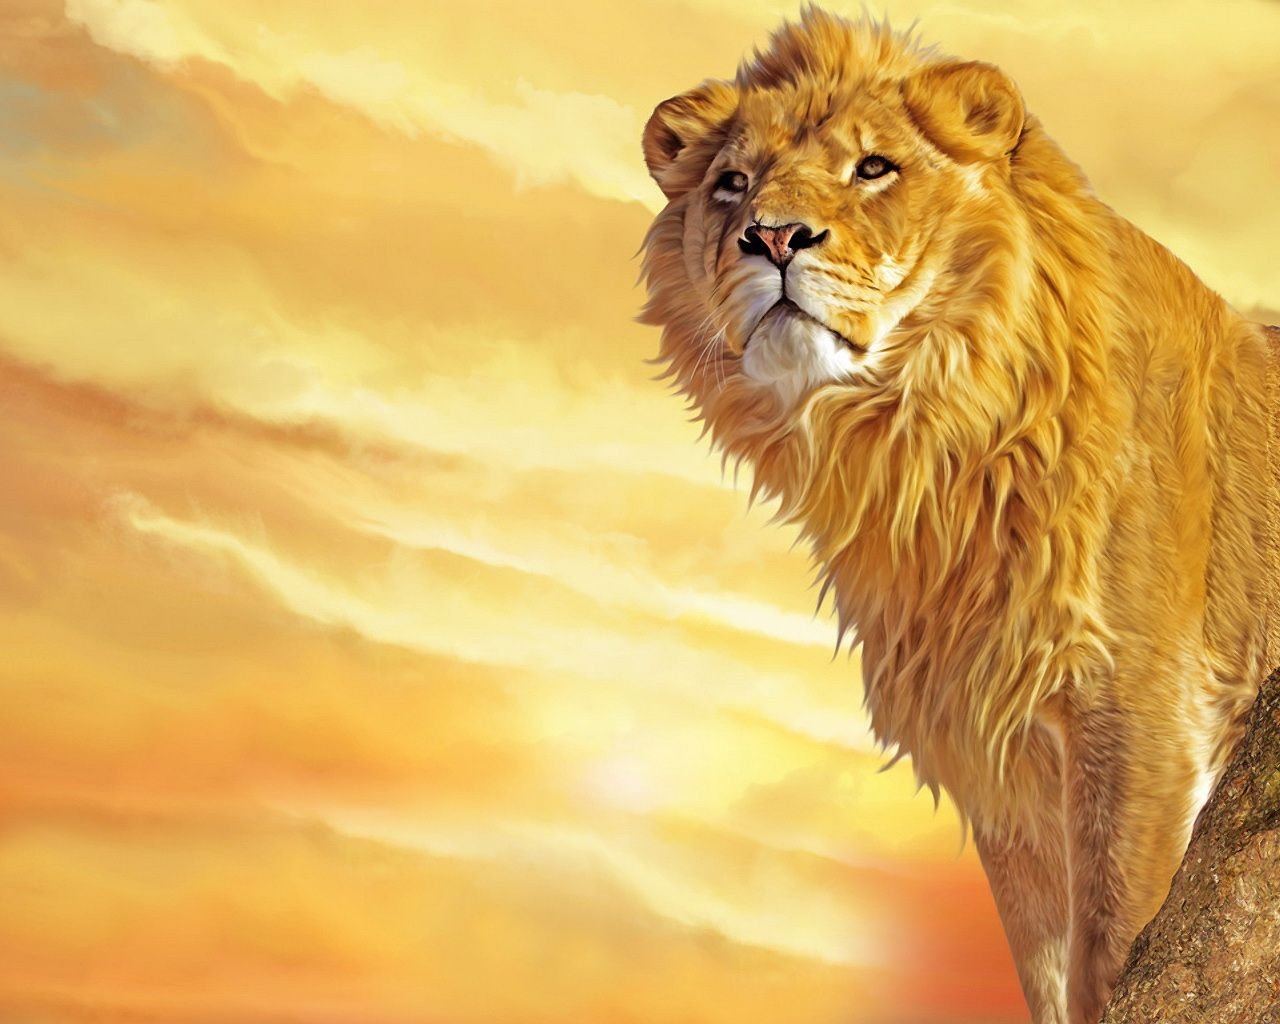 Download Lion Art Wallpaper Free Wallpapers